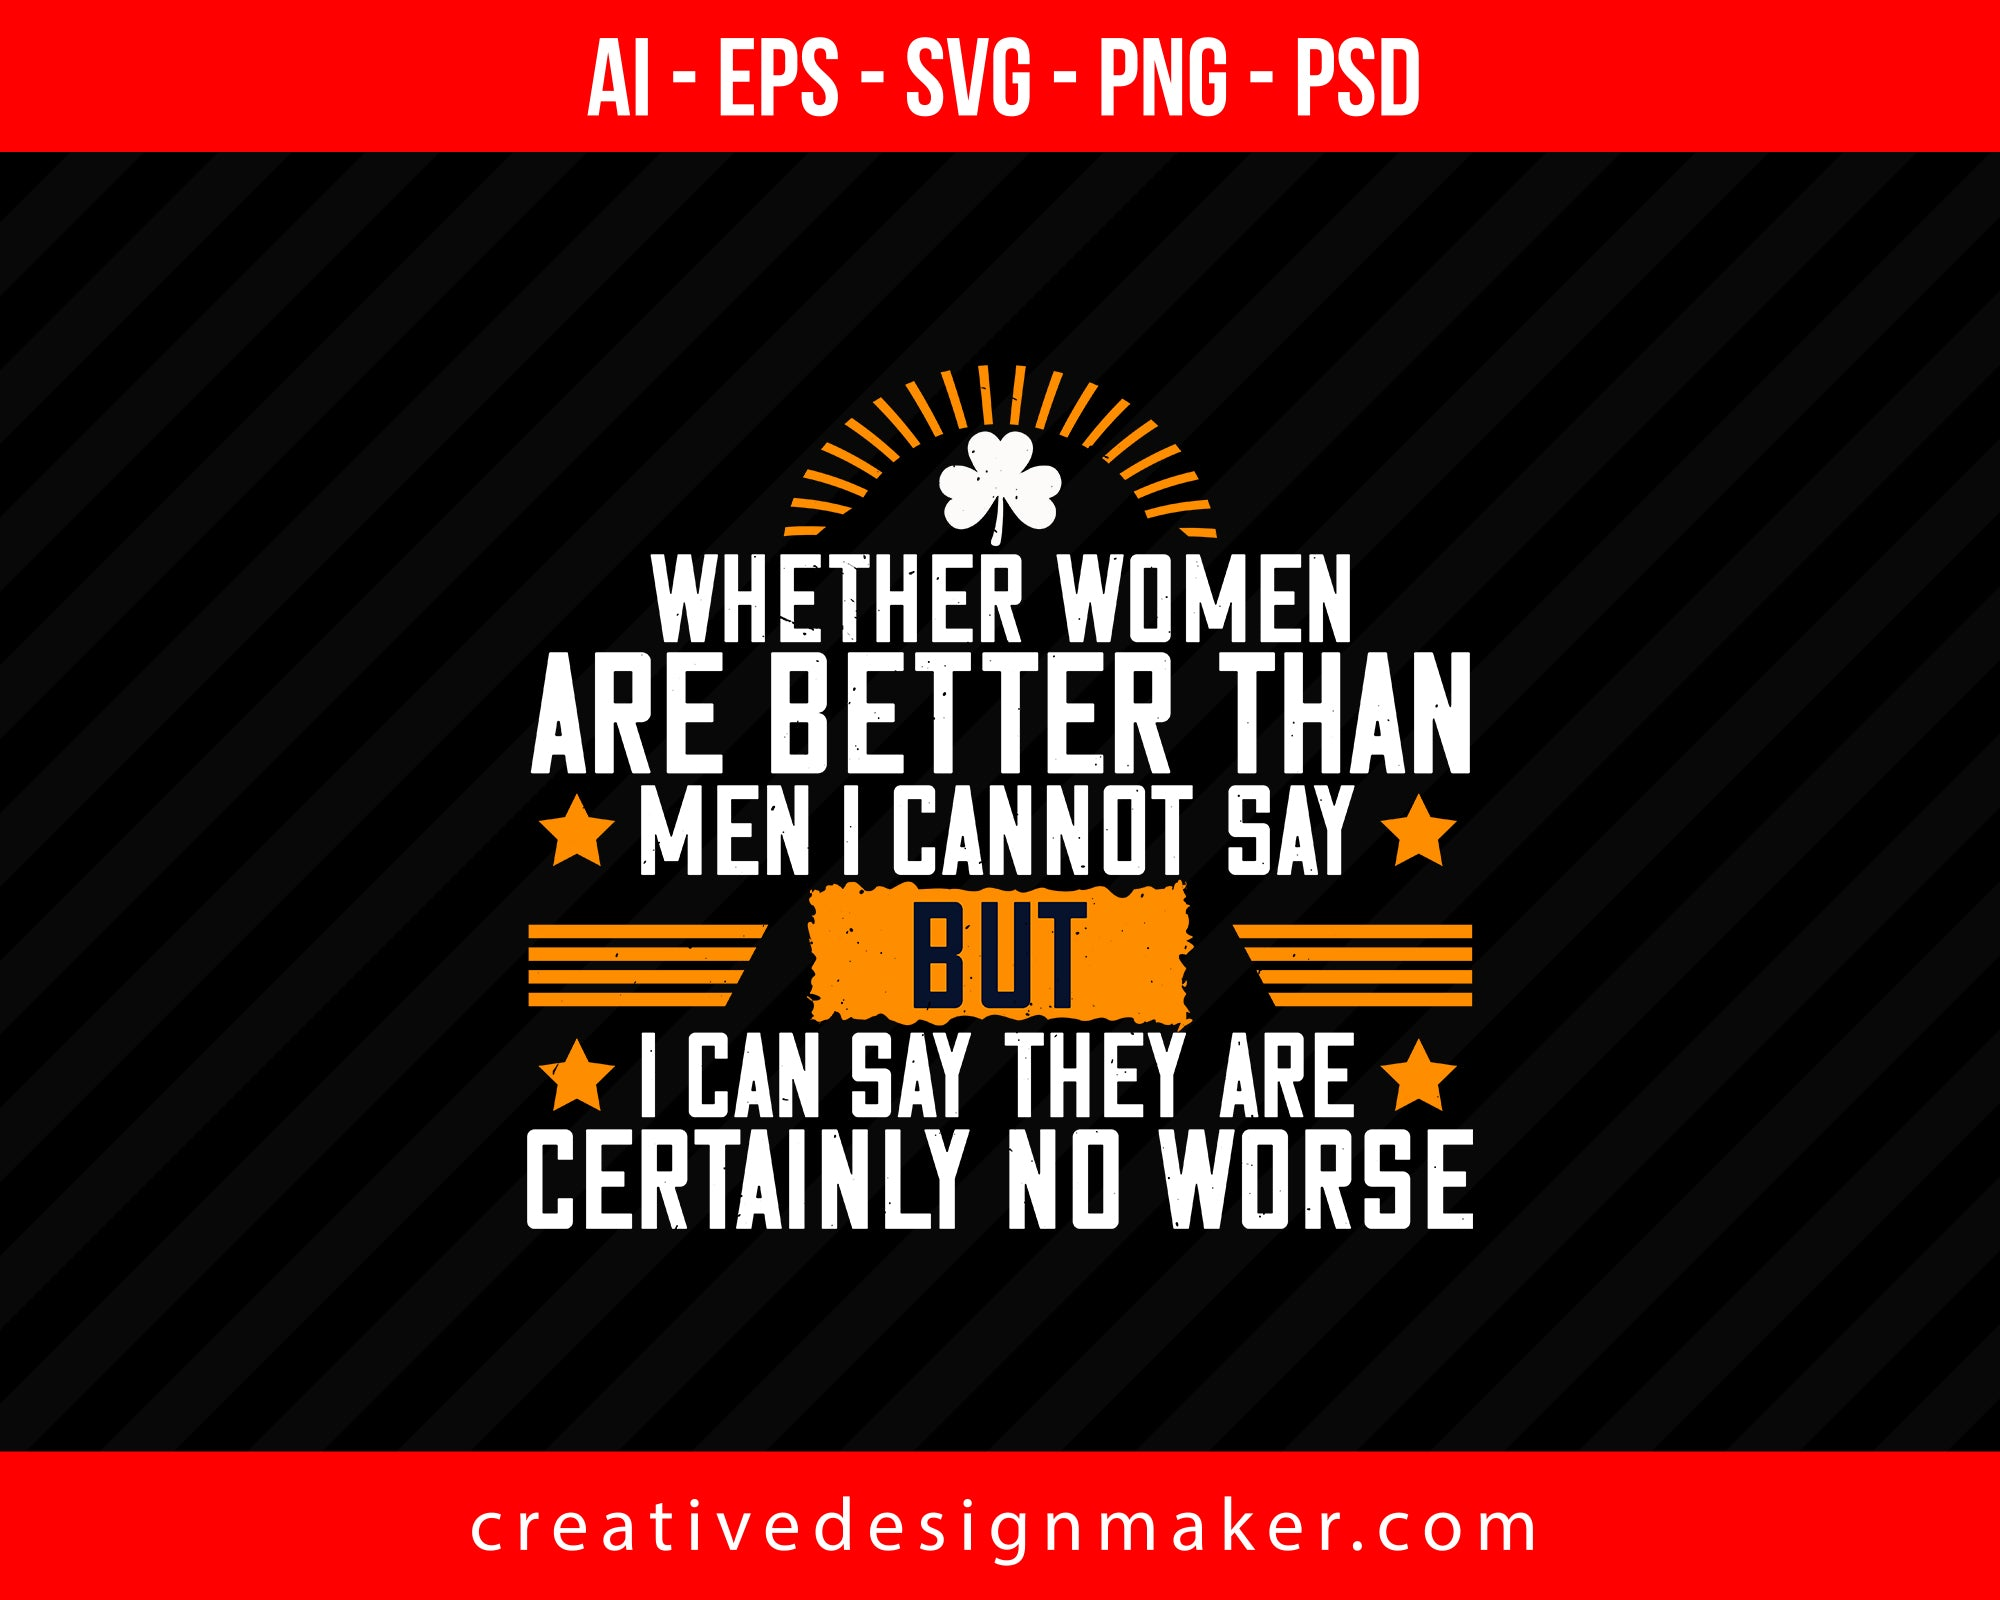 Whether women are better than men I cannot say – but I can say they are certainly no worse Women's Day Print Ready Editable T-Shirt SVG Design!